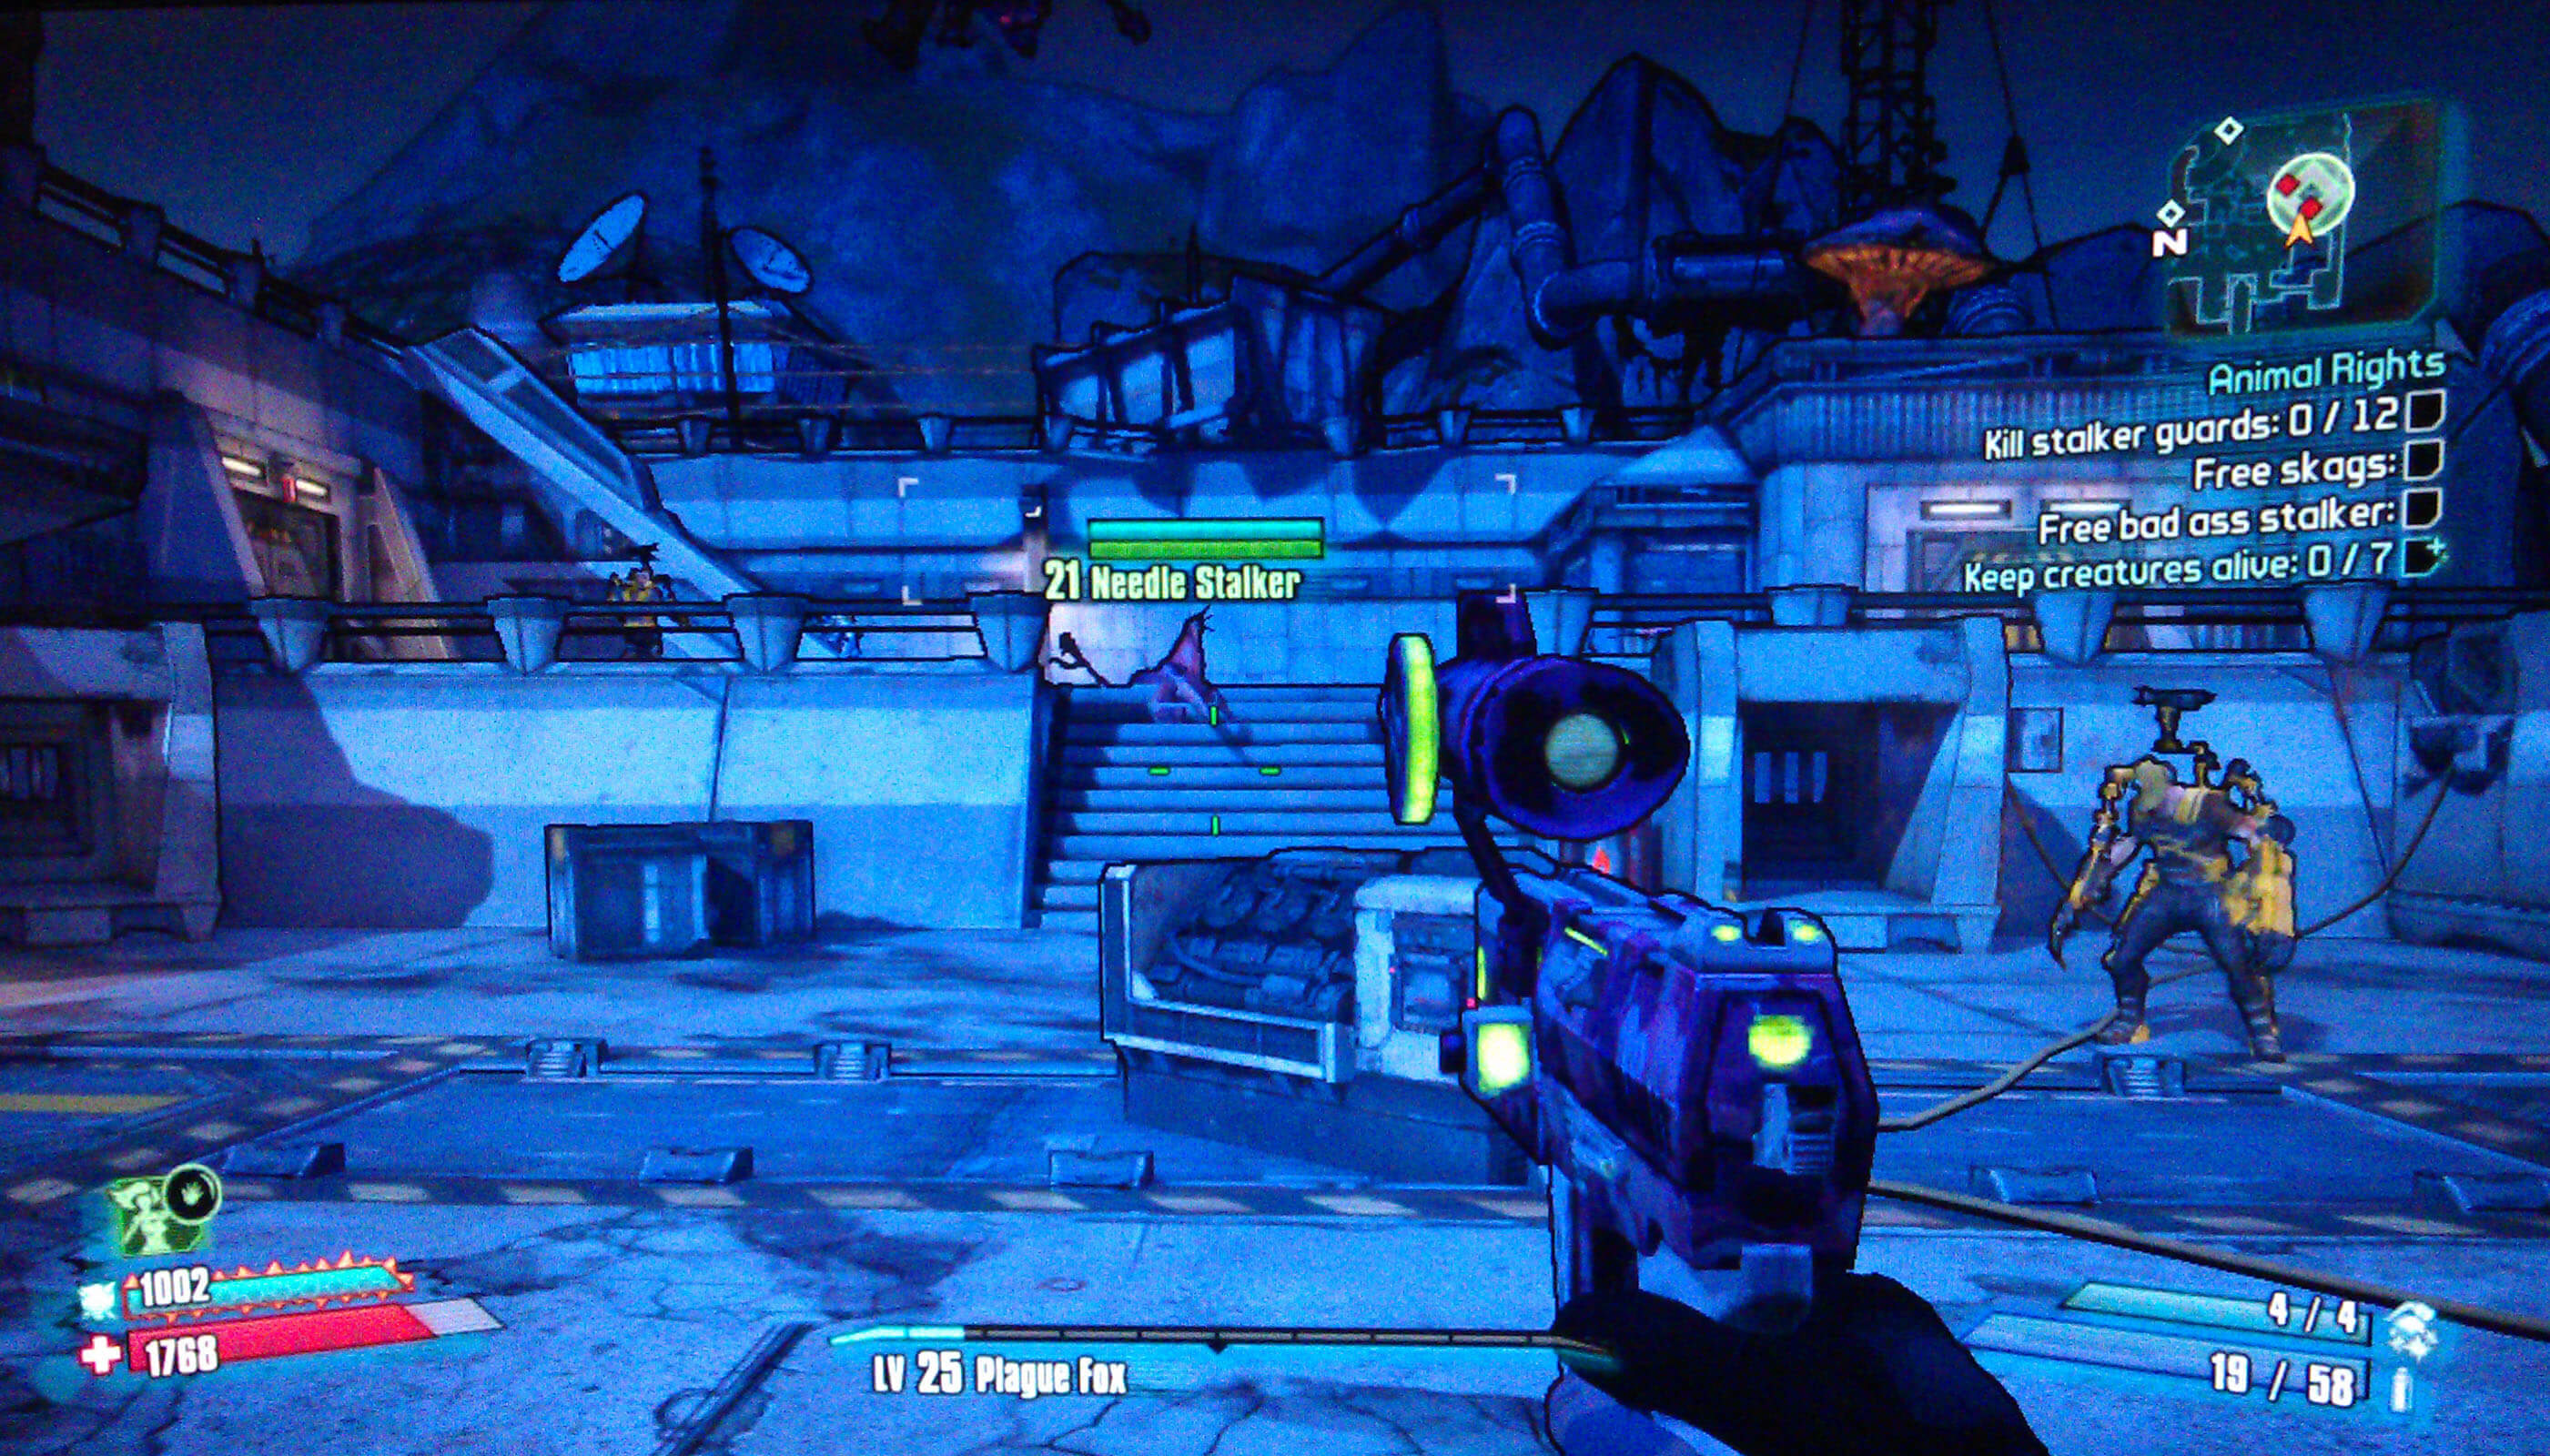 Borderlands 2 Animal Rights Walkthrough - Video Games, Wikis, Cheats